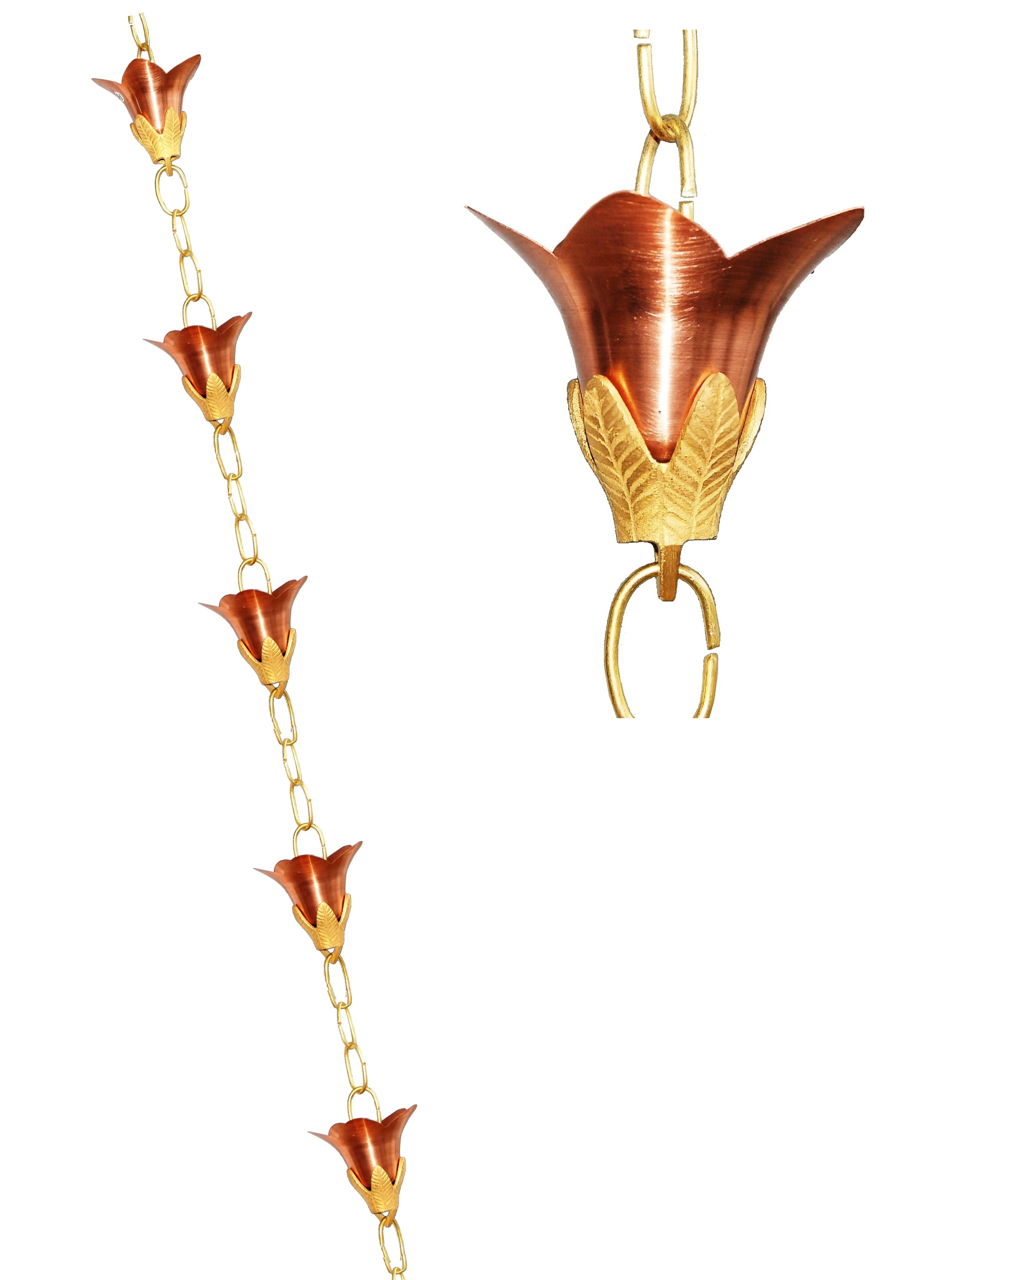 Picture of U-nitt Pure Copper Rain Chain: flower Cup 8 - 1/2 ft #5511